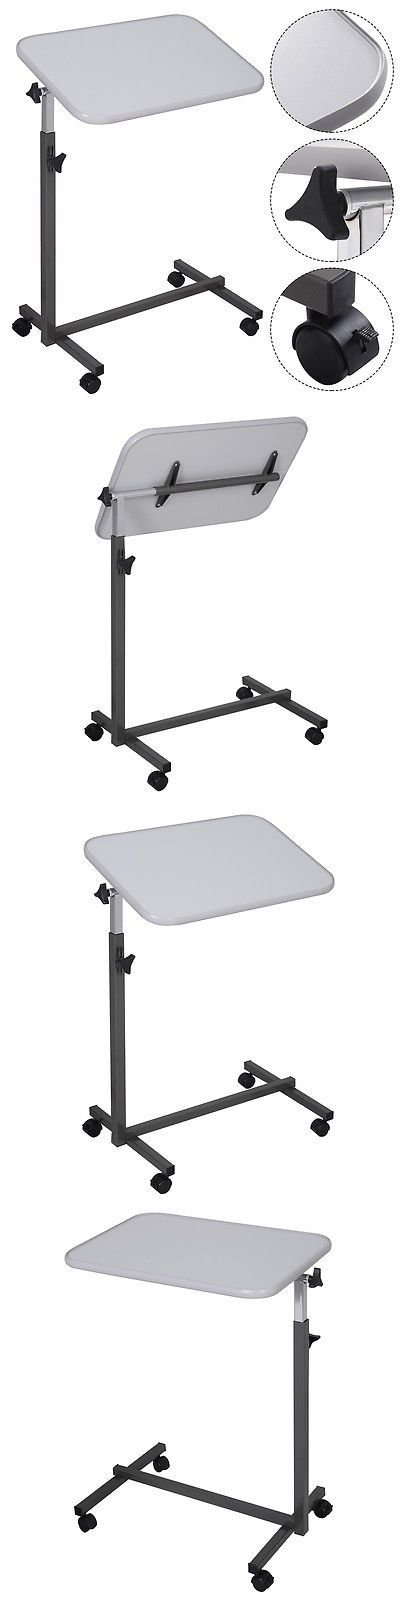 Other Mobility Equipment: Overbed Rolling Table Over Bed Laptop Food Tray Hospital Desk Tilting Top Gary BUY IT NOW ONLY: $32.99